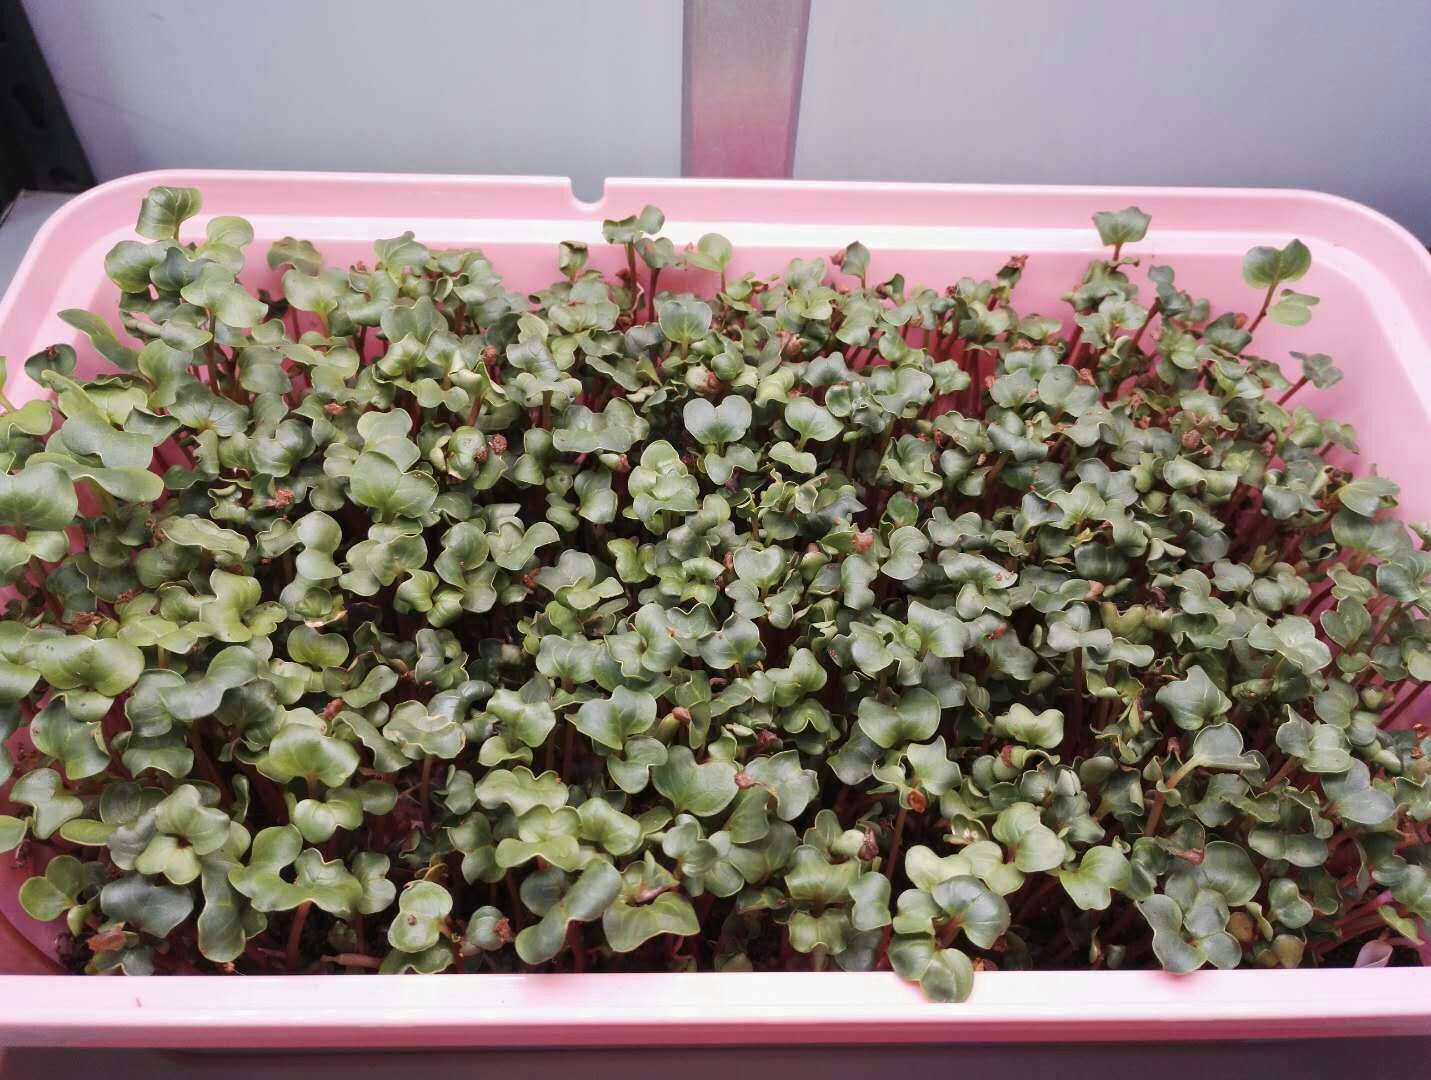 Self Contained Hydroponic Tabletop Farm | HydroPro Sales Inc